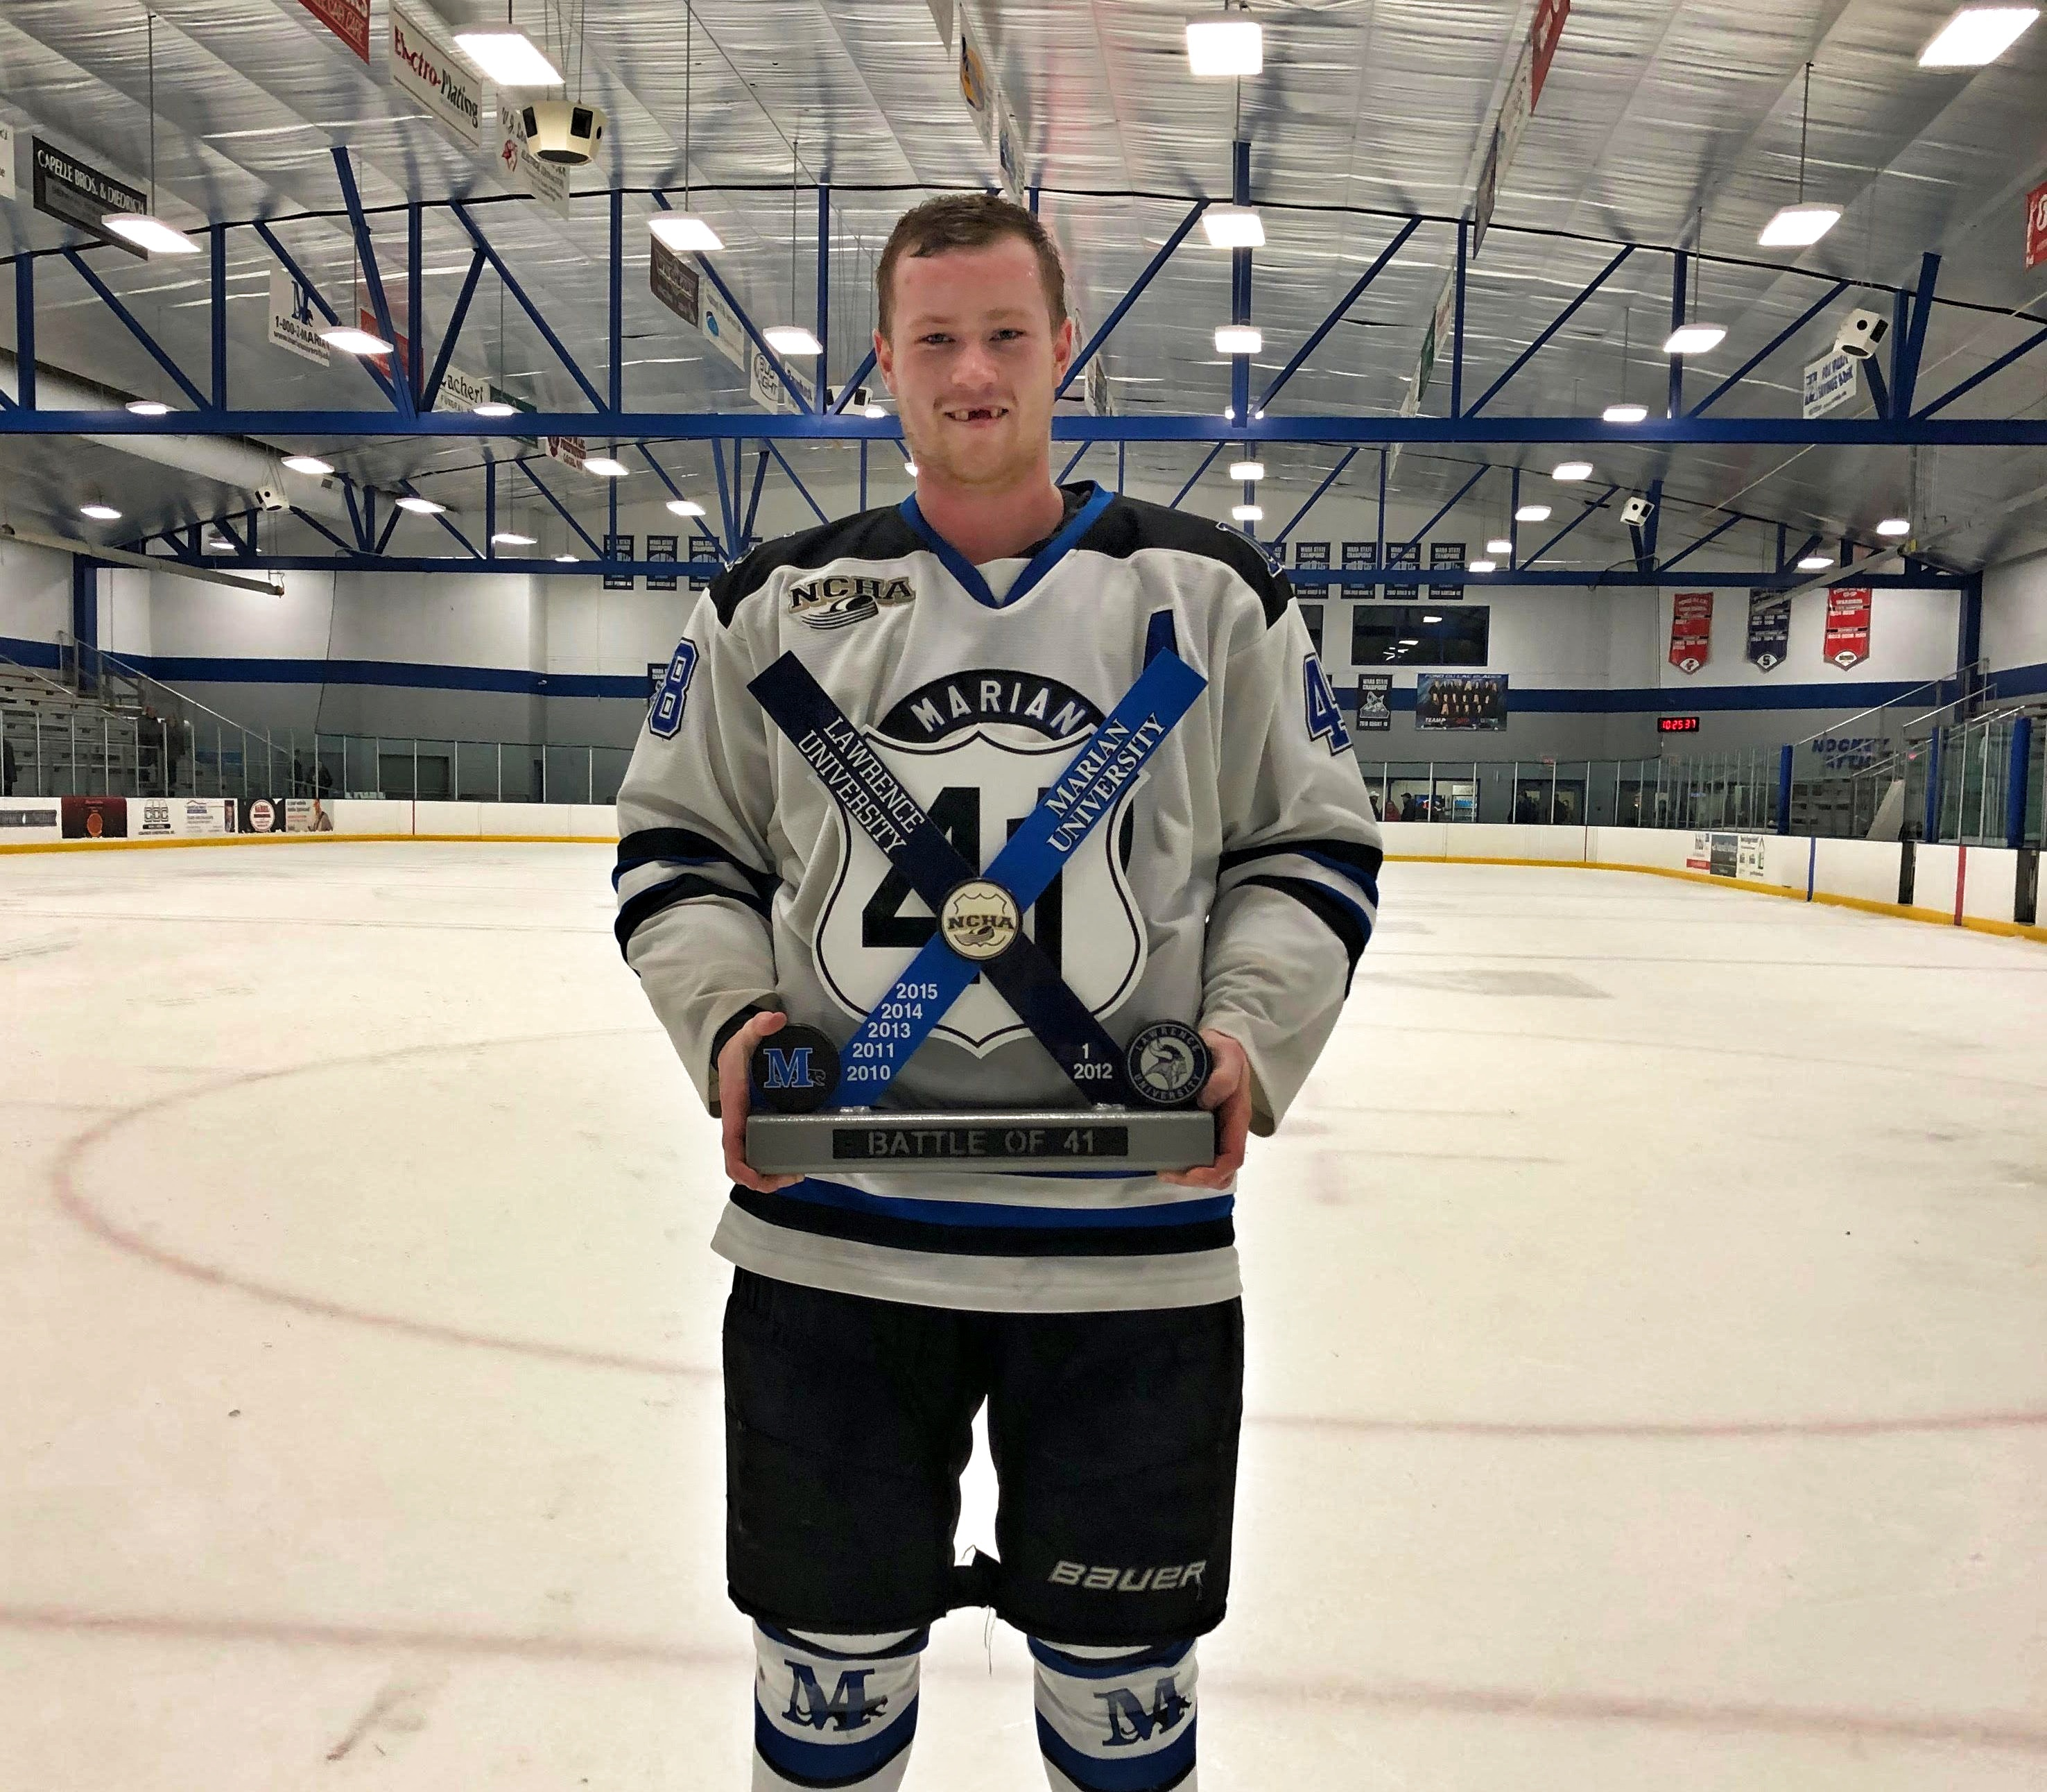 College hockey player Brock Weston holds a trophy.